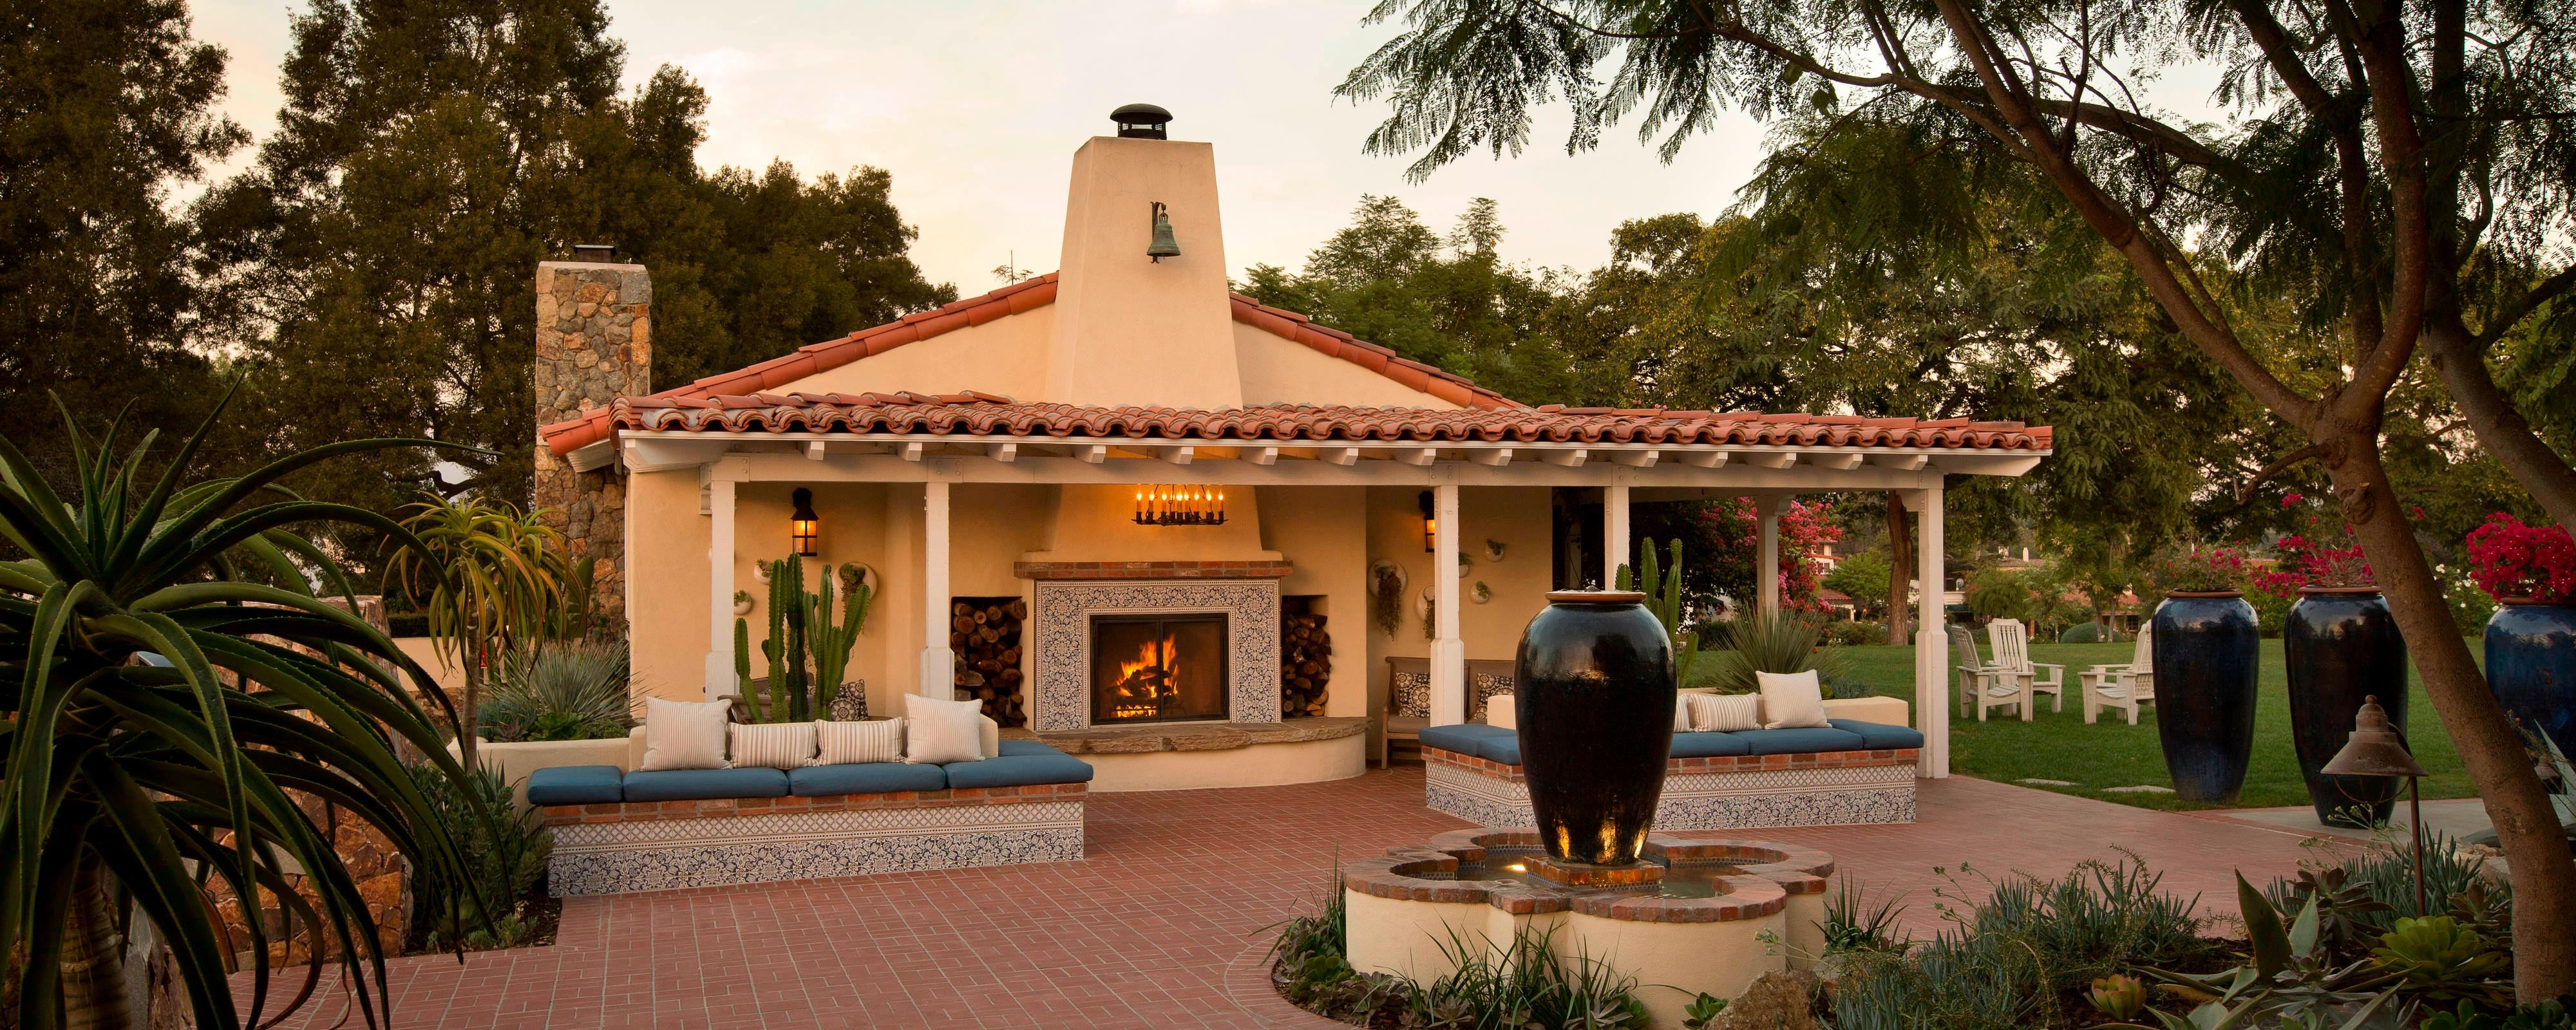 The Inn at Rancho Santa Fe, a Tribute Portfolio Resort & Spa ...